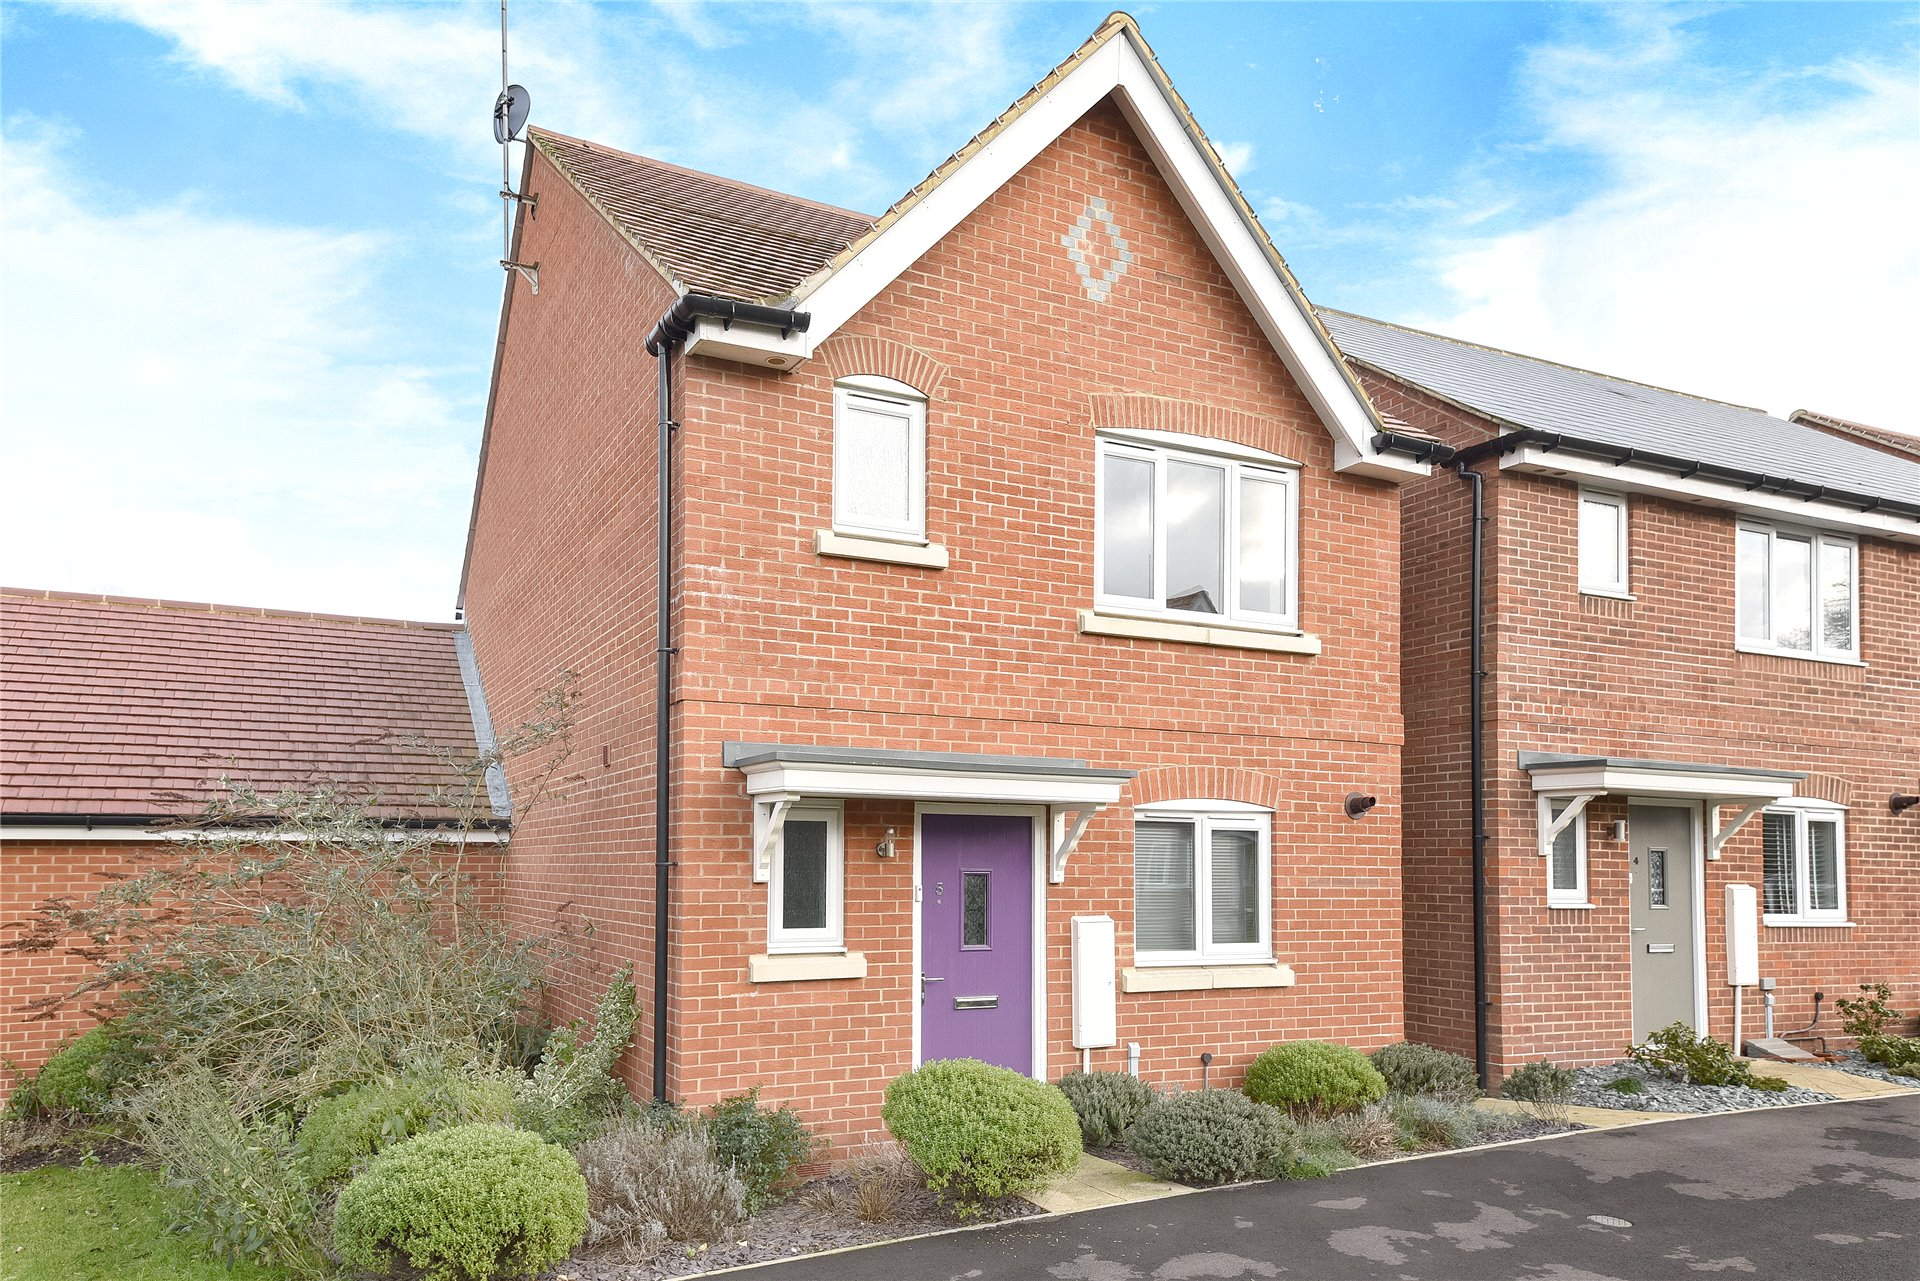 3 Bedrooms Detached House for sale in Elk Path, Three Mile Cross, Reading, Berkshire, RG7